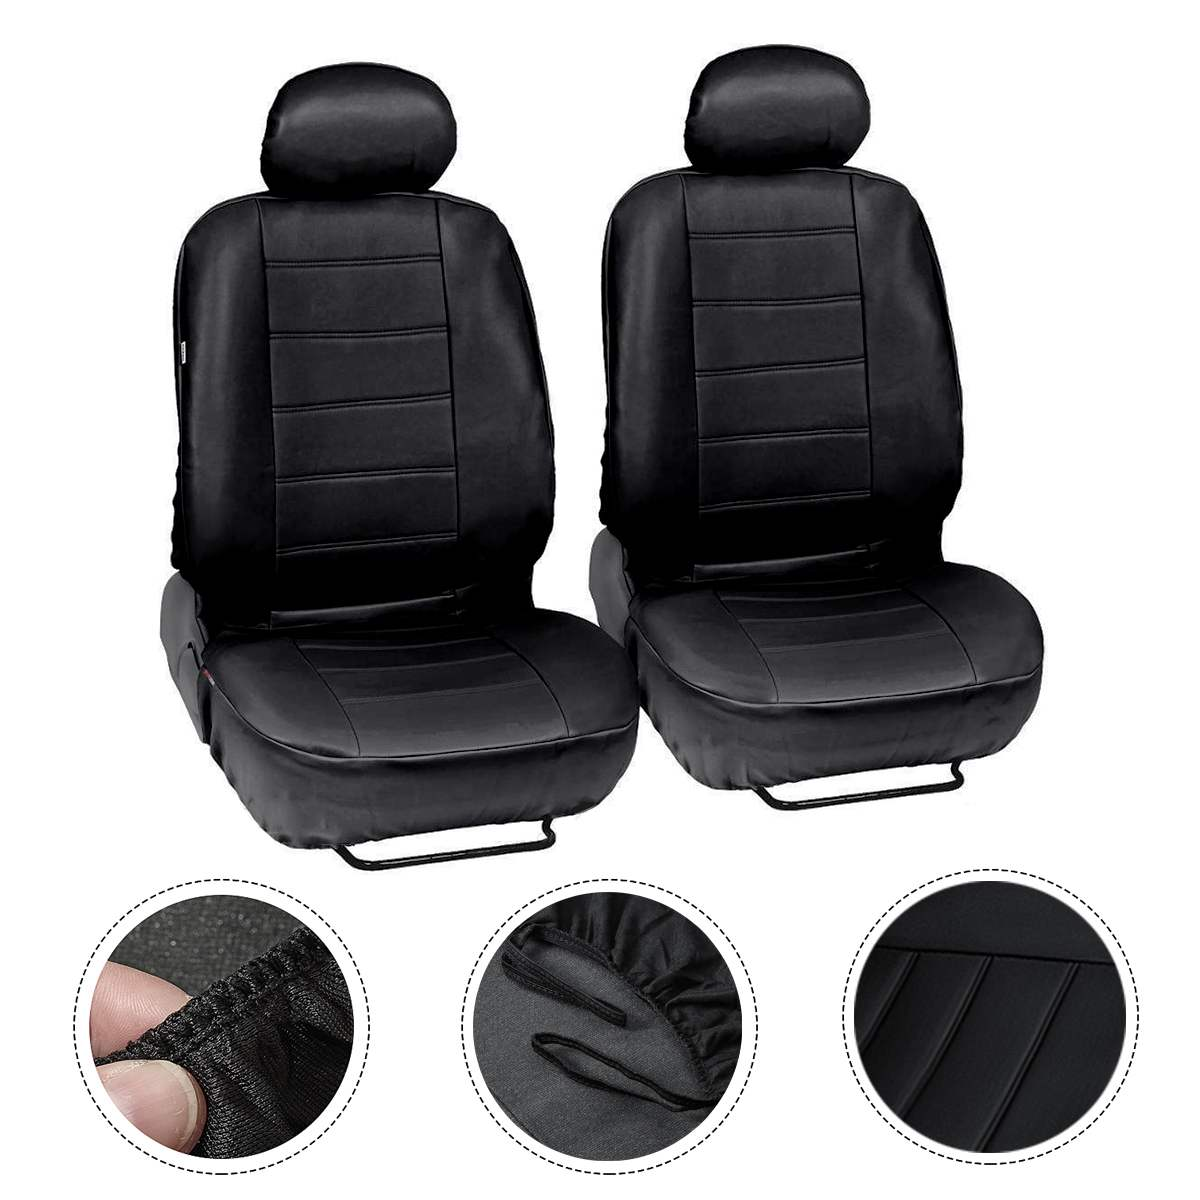 New Luxury PU Leather Car Seat Cover Wear-resistant Anti-static Easy To Clean Car Universals Seat Cover Car Interior 4/9 Sets